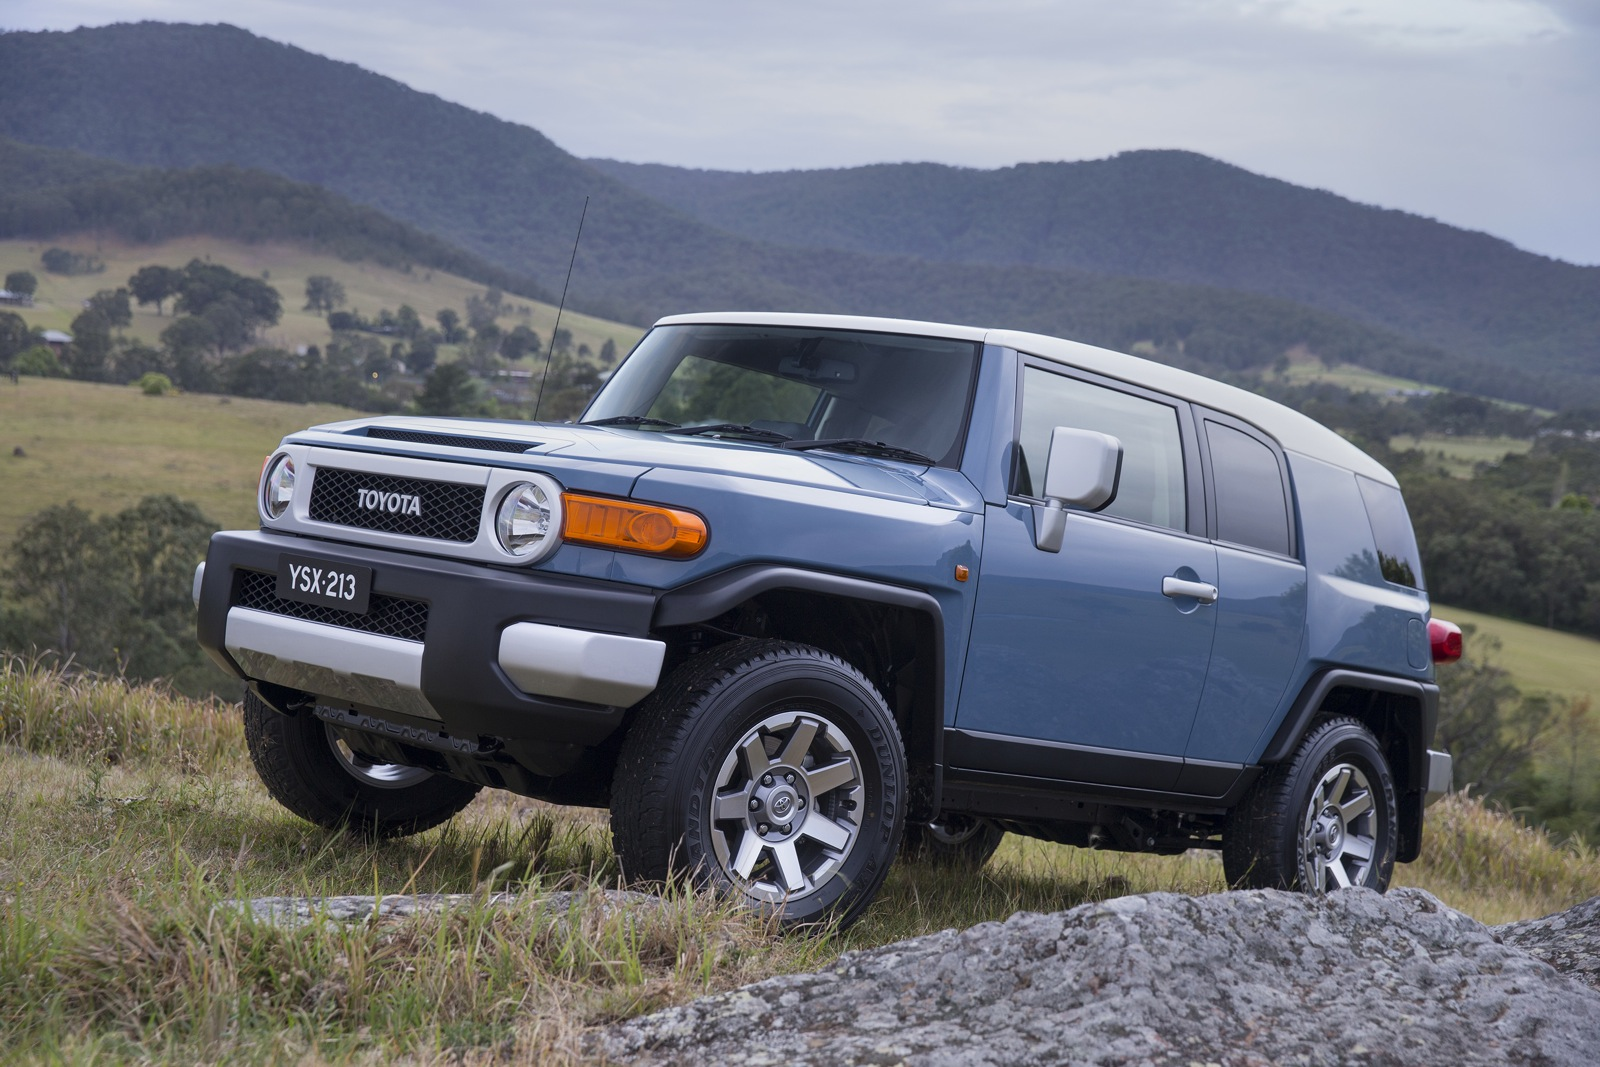 Toyota Fj Cruiser Lifestyle Review Photos Caradvice